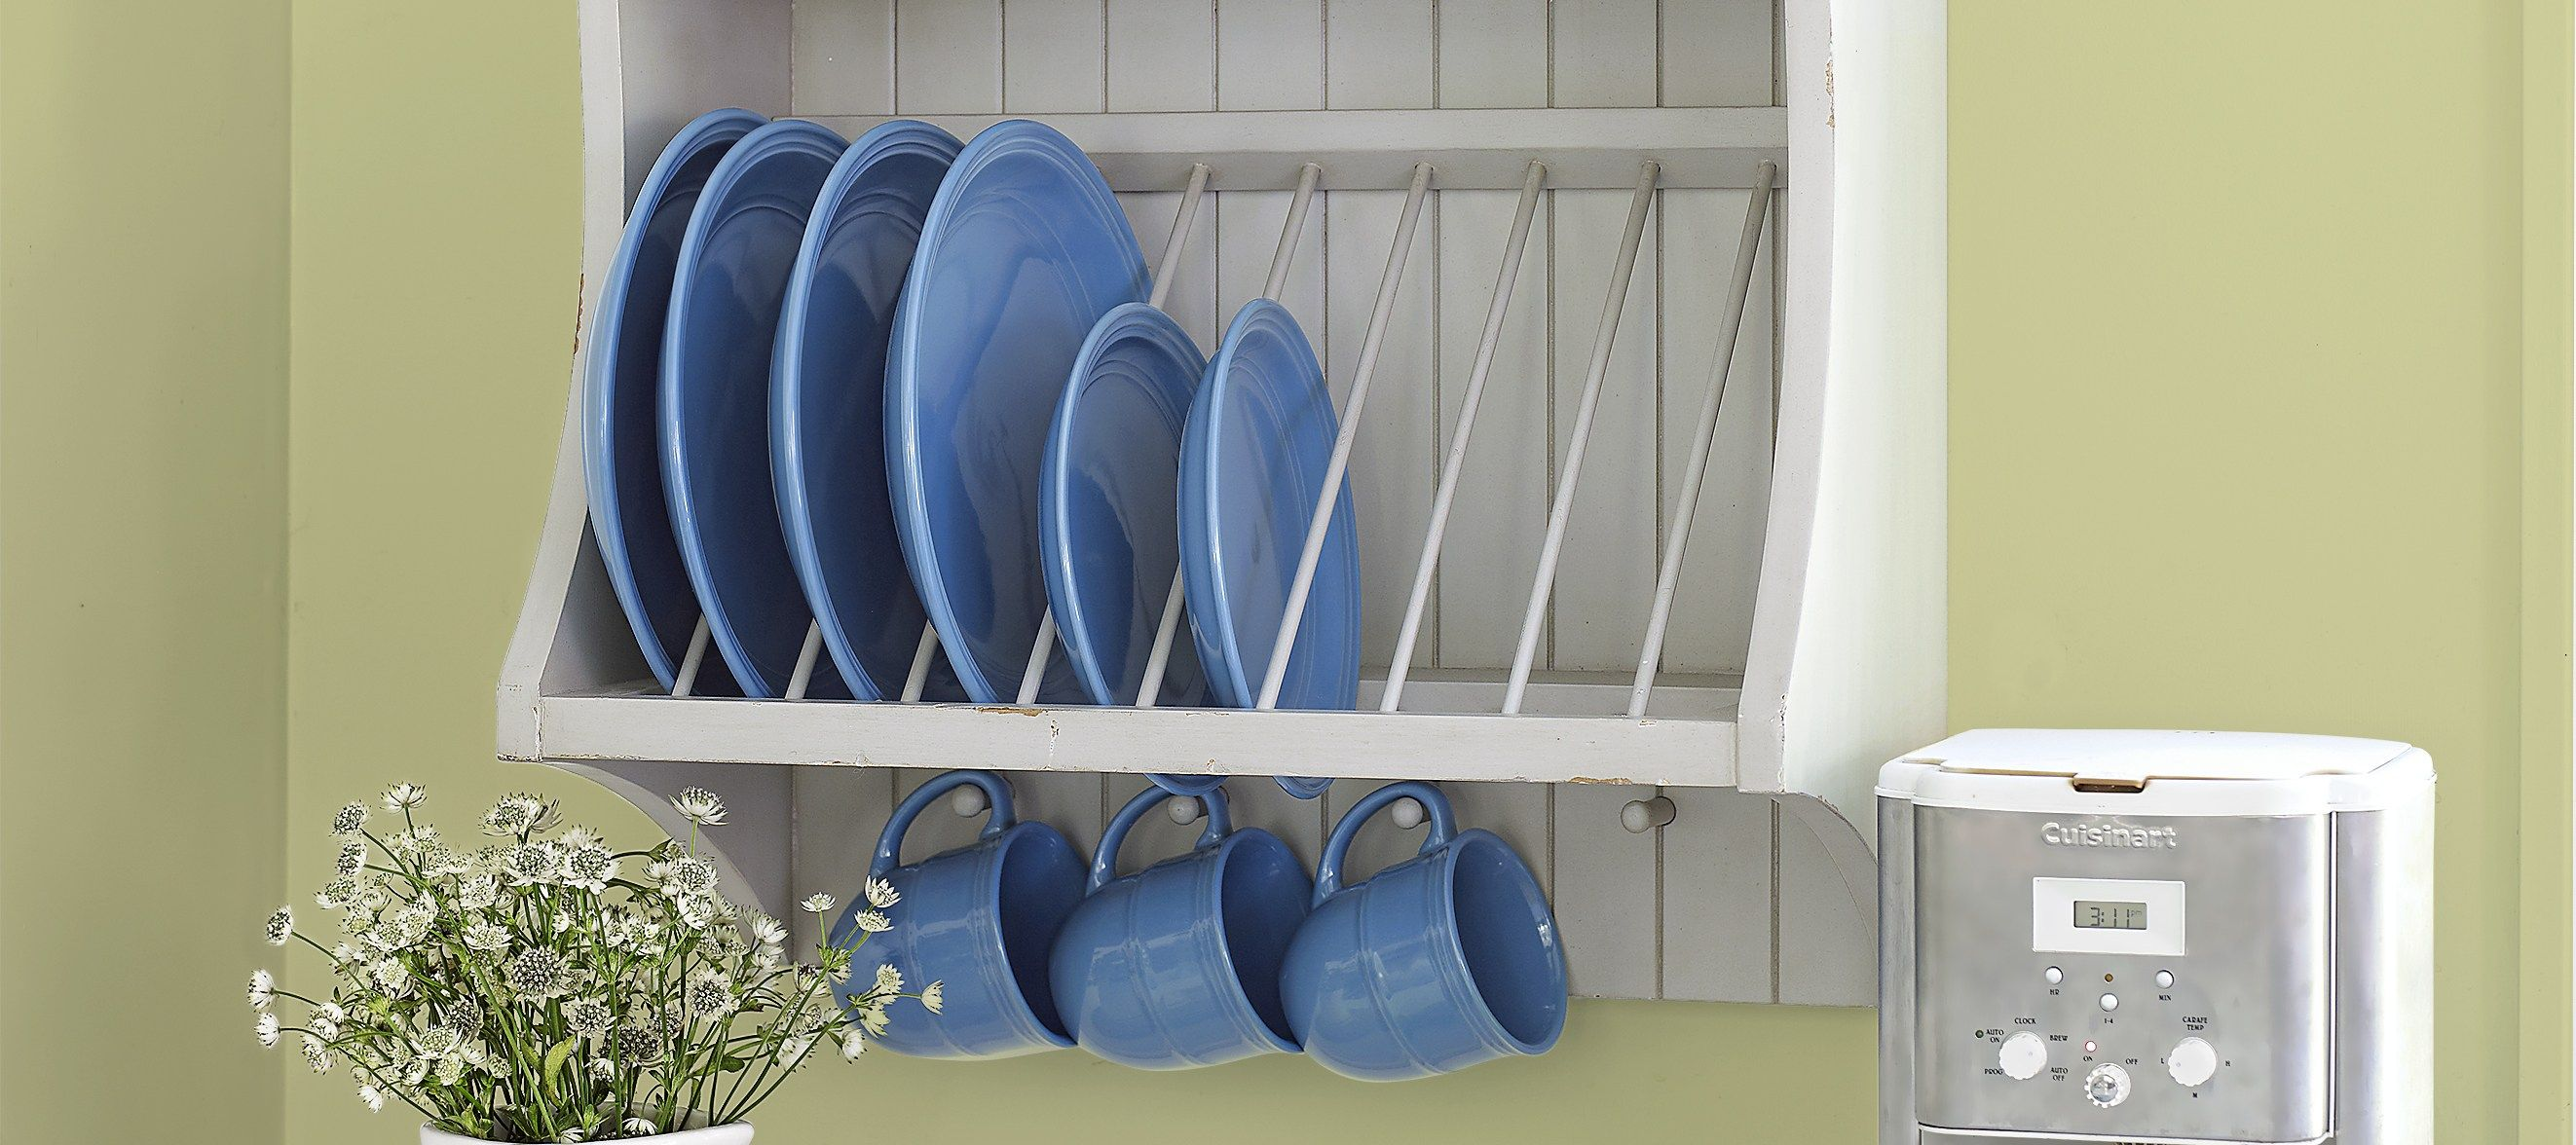 How To Build A Plate Rack This Old House In Plate Rack Cabinet 15 Best Plate Rack Cabinet Plans Wooden Magazine Rack Plate Racks Wooden Plate Rack